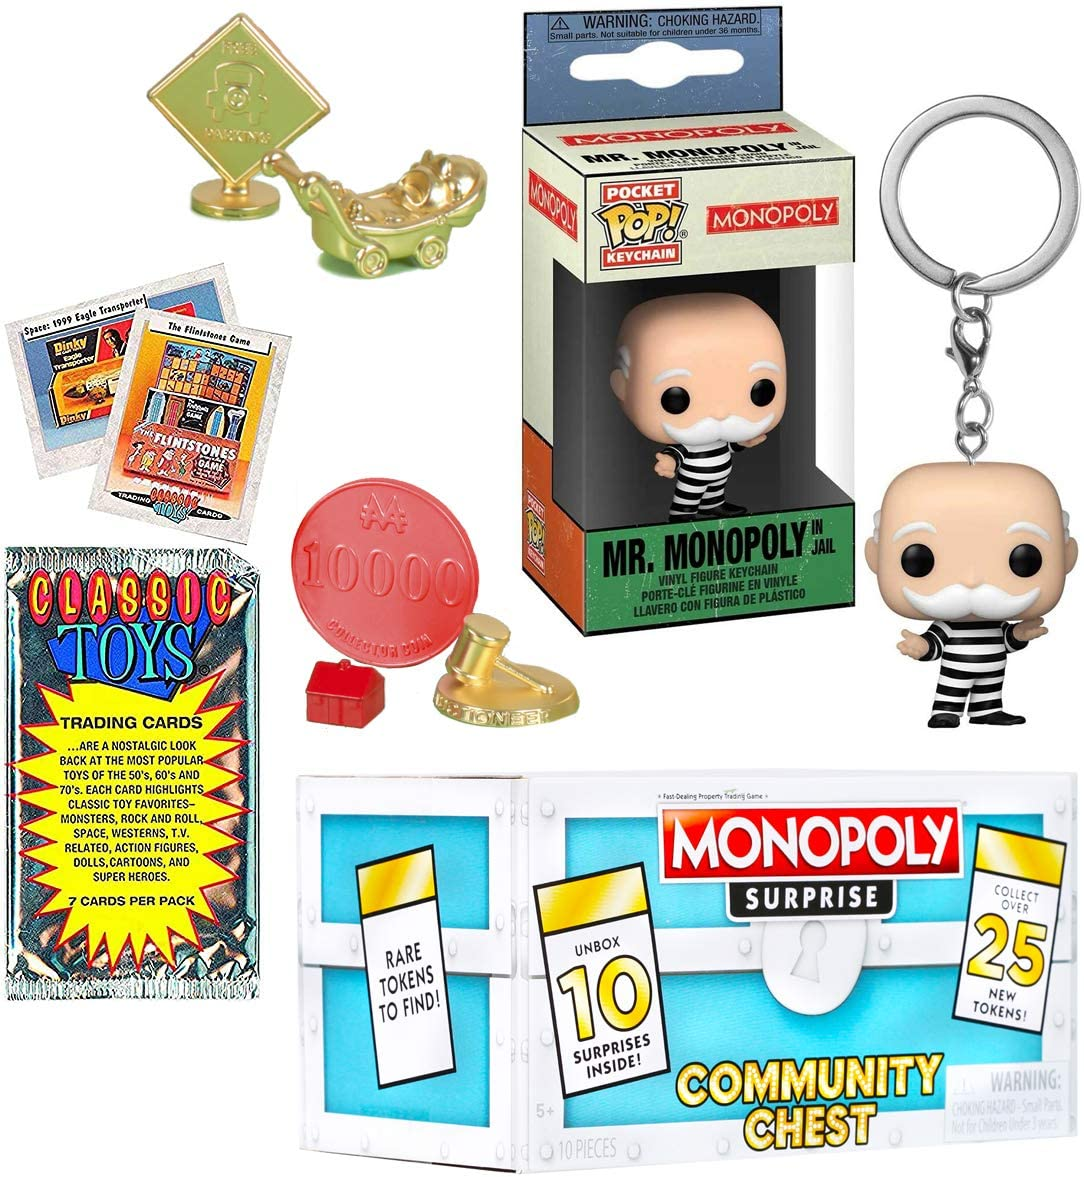 Jailed Pocket Pop! Mr. Monopoly Figure Icon Bundled with Classic Retro Game Token Exclusive Multi-Surprise Peel 'N Reveal Community Chest Box + Keychain Hanger + Vintage Toy Trading Cards Pack 3 items